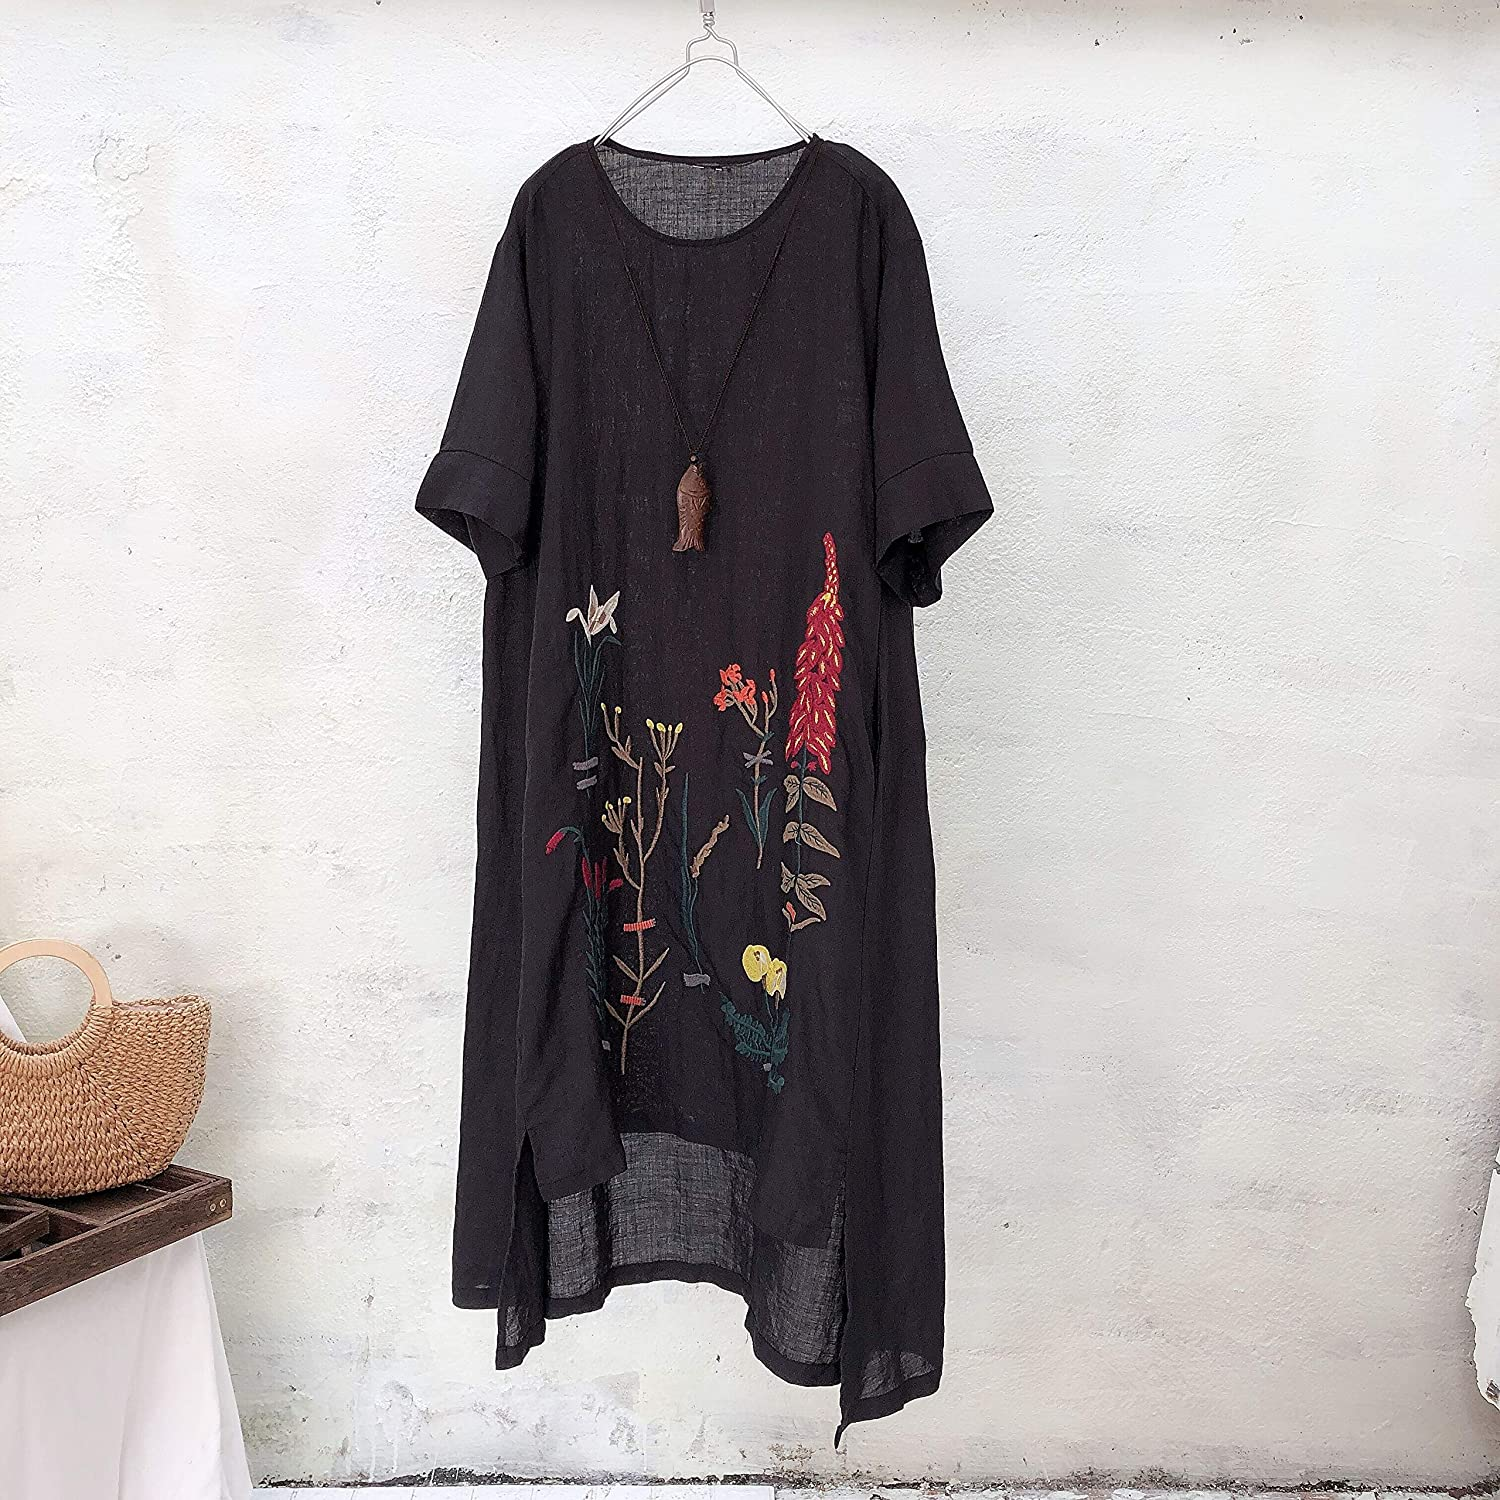 f858692e263 Minibee Women s Embroidered Linen Dress Summer A-Line Sundress Hi Low Tunic  Clothing at Amazon Women s Clothing store